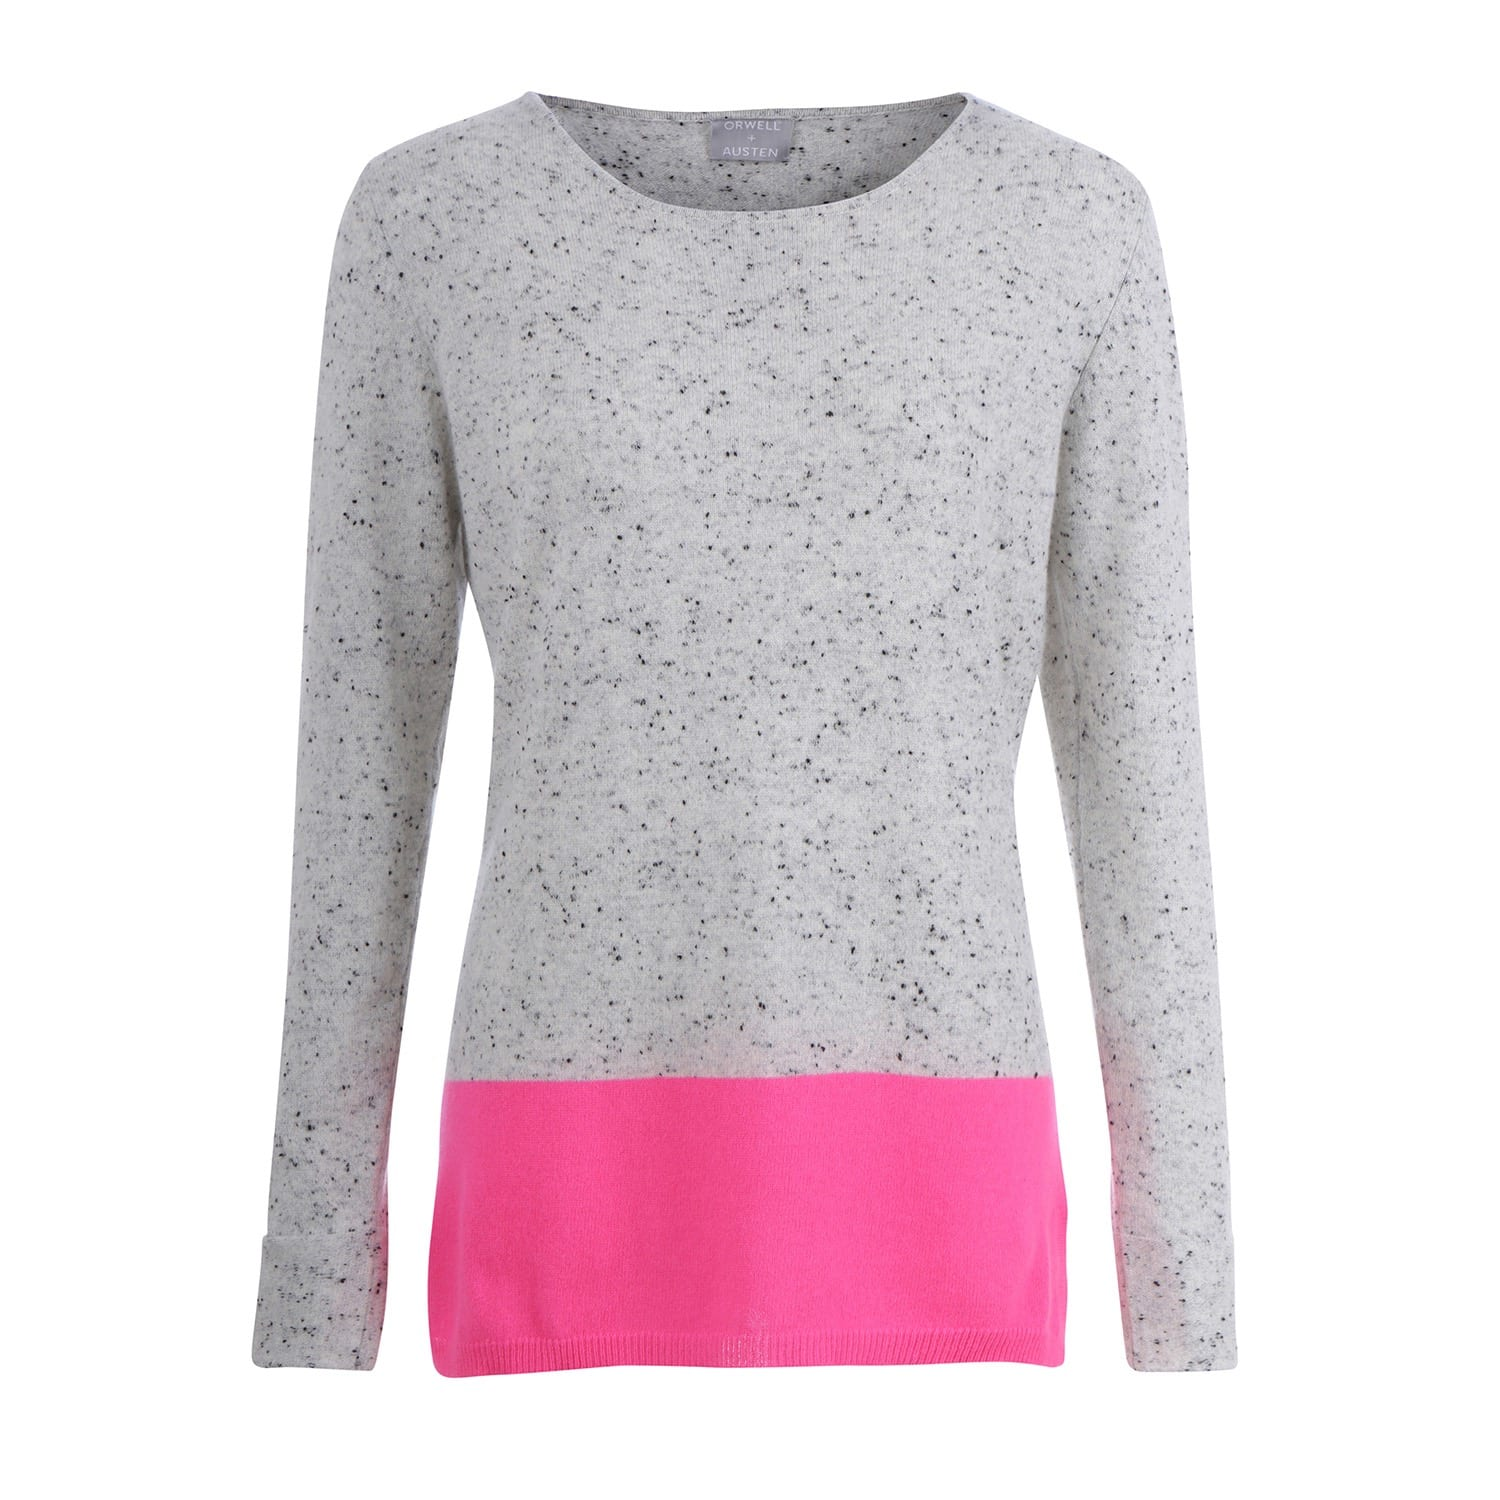 Speckled Grey & Neon Pink Colour Block Sweater | Orwell   Austen ...